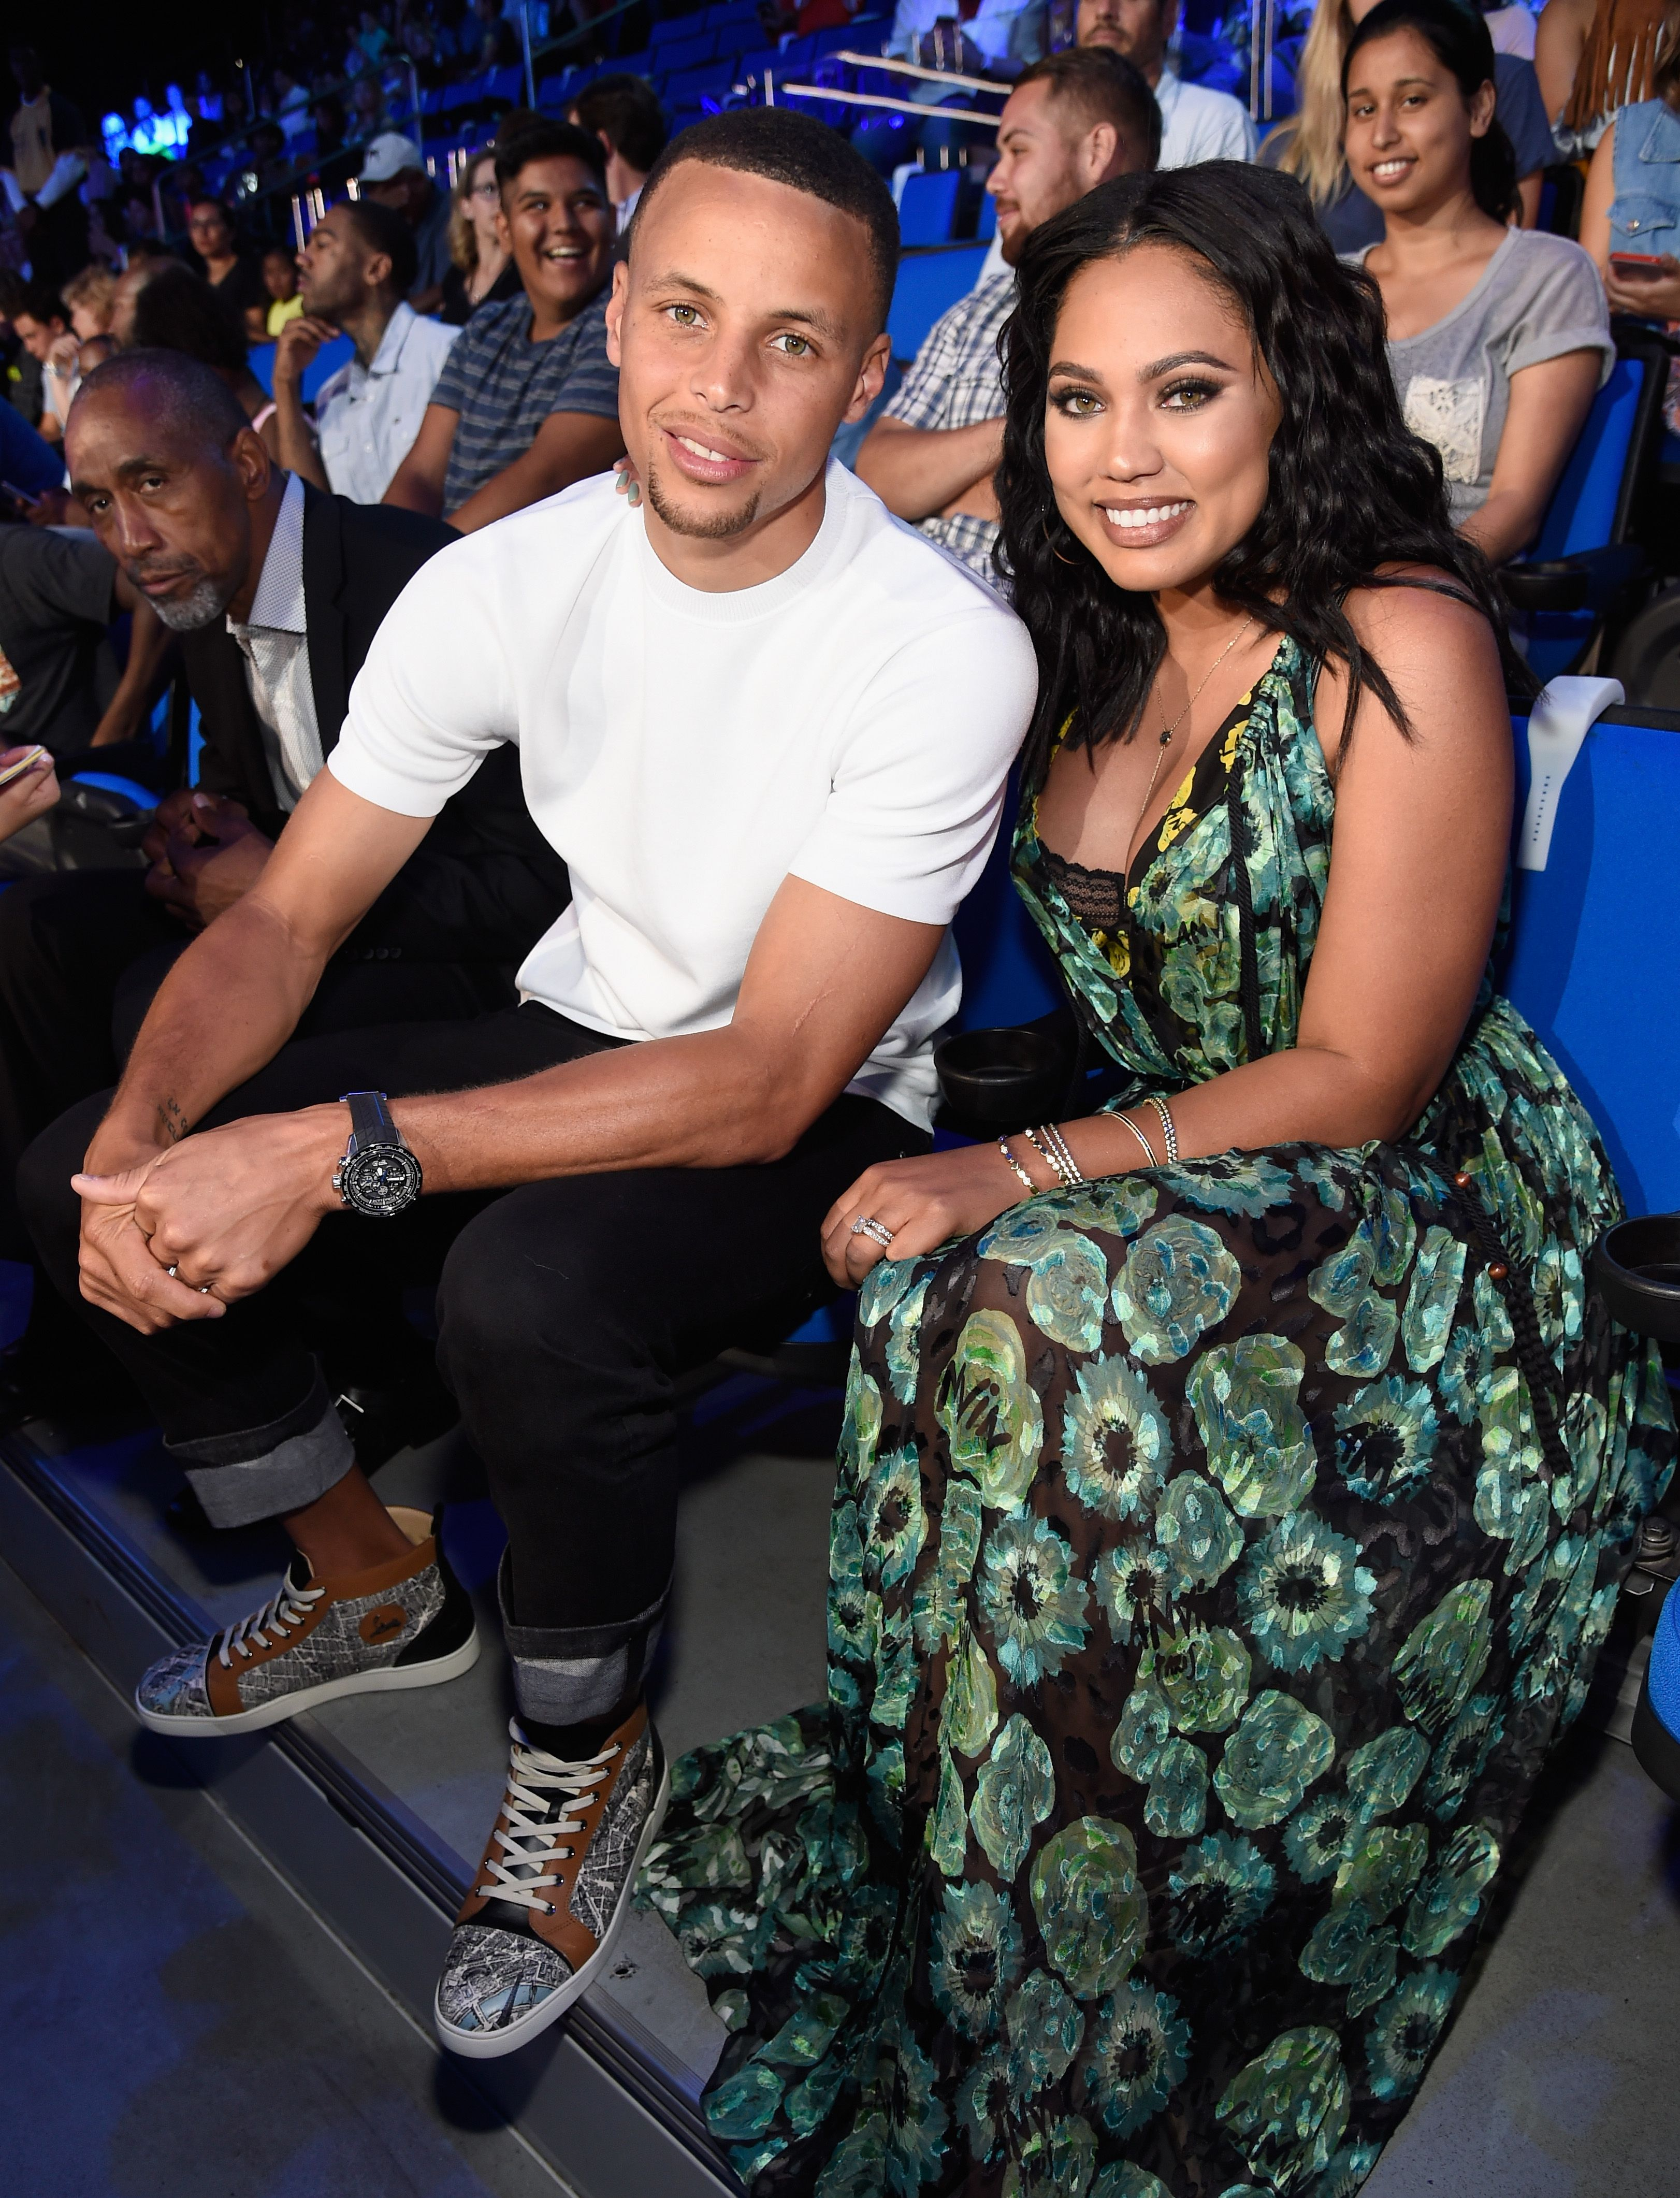 Stephen Curry and Ayesha Curry attend the Nickelodeon Kids' Choice Sports Awards 2016 at UCLA's Pauley Pavilion on July 14, 2016 in Westwood, California. | Source: Getty Images